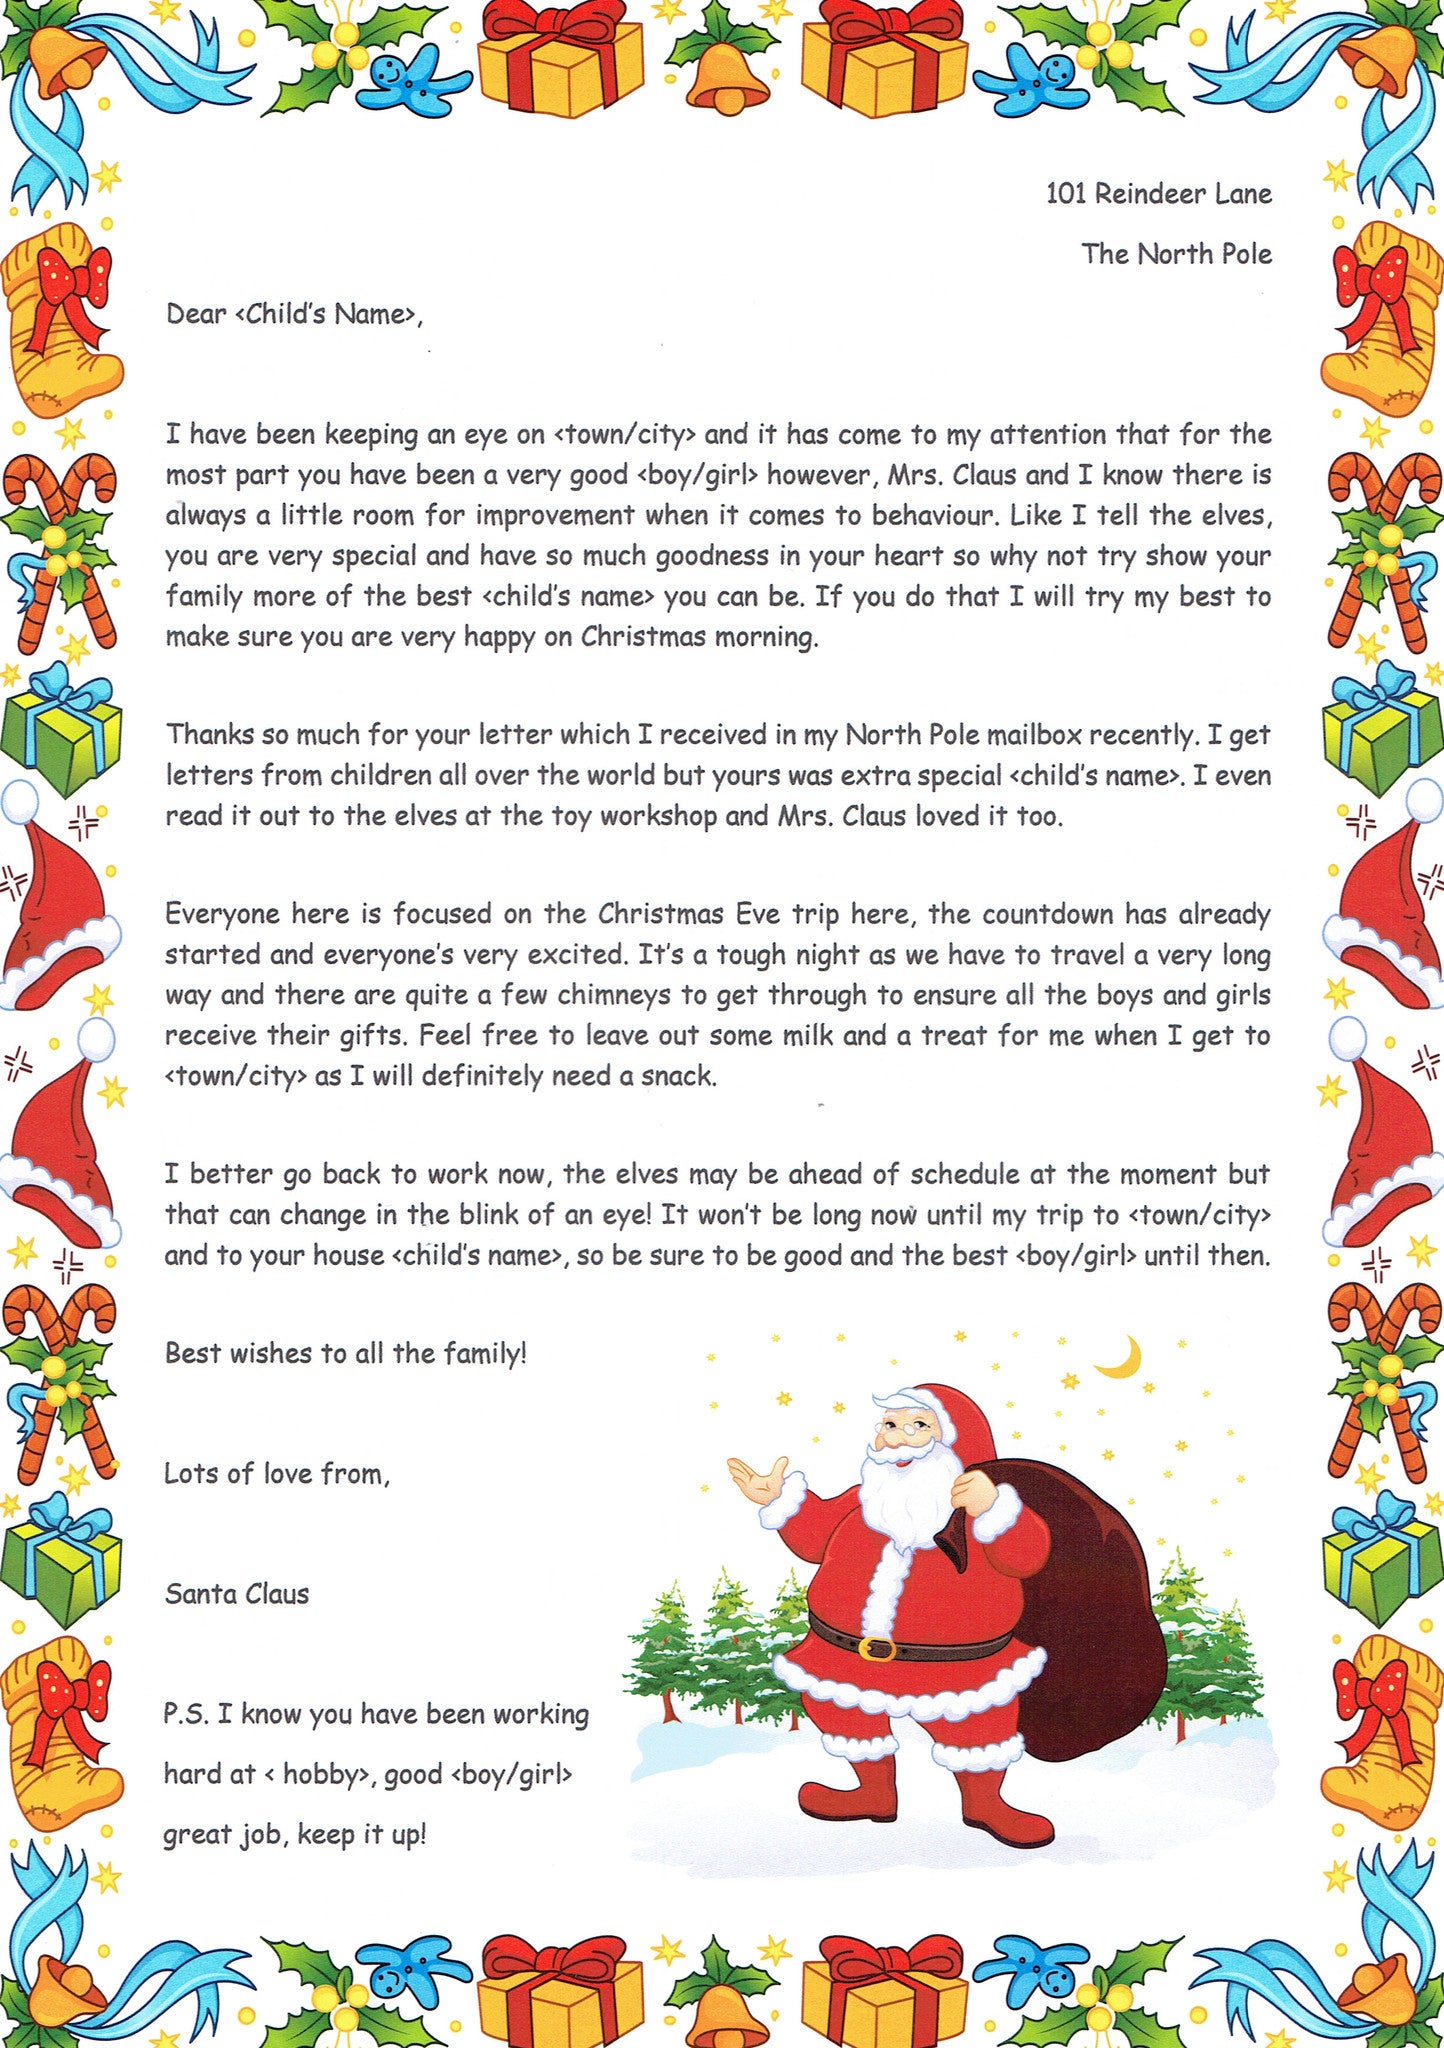 Santa U2013 Received Your Letter